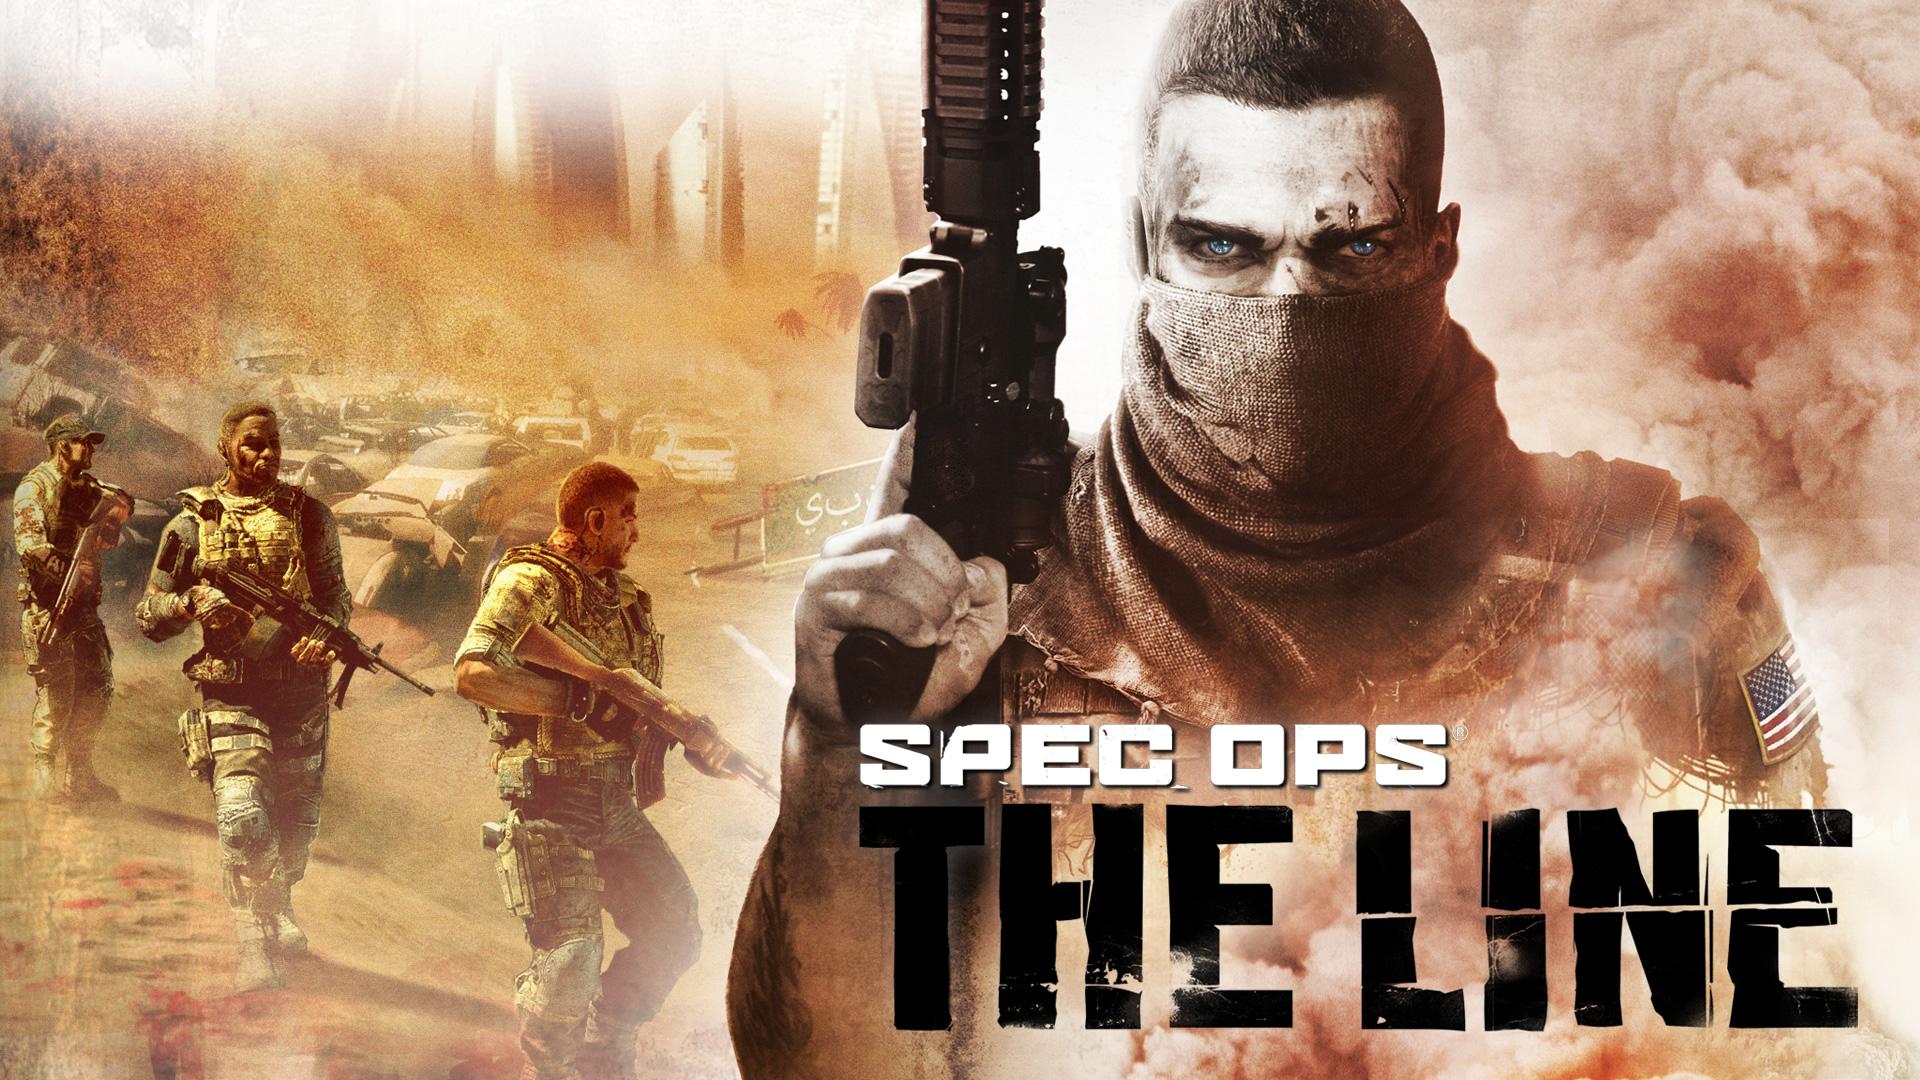 Spec Ops The Line Wallpaper HD Video Games Blogger 1920x1080